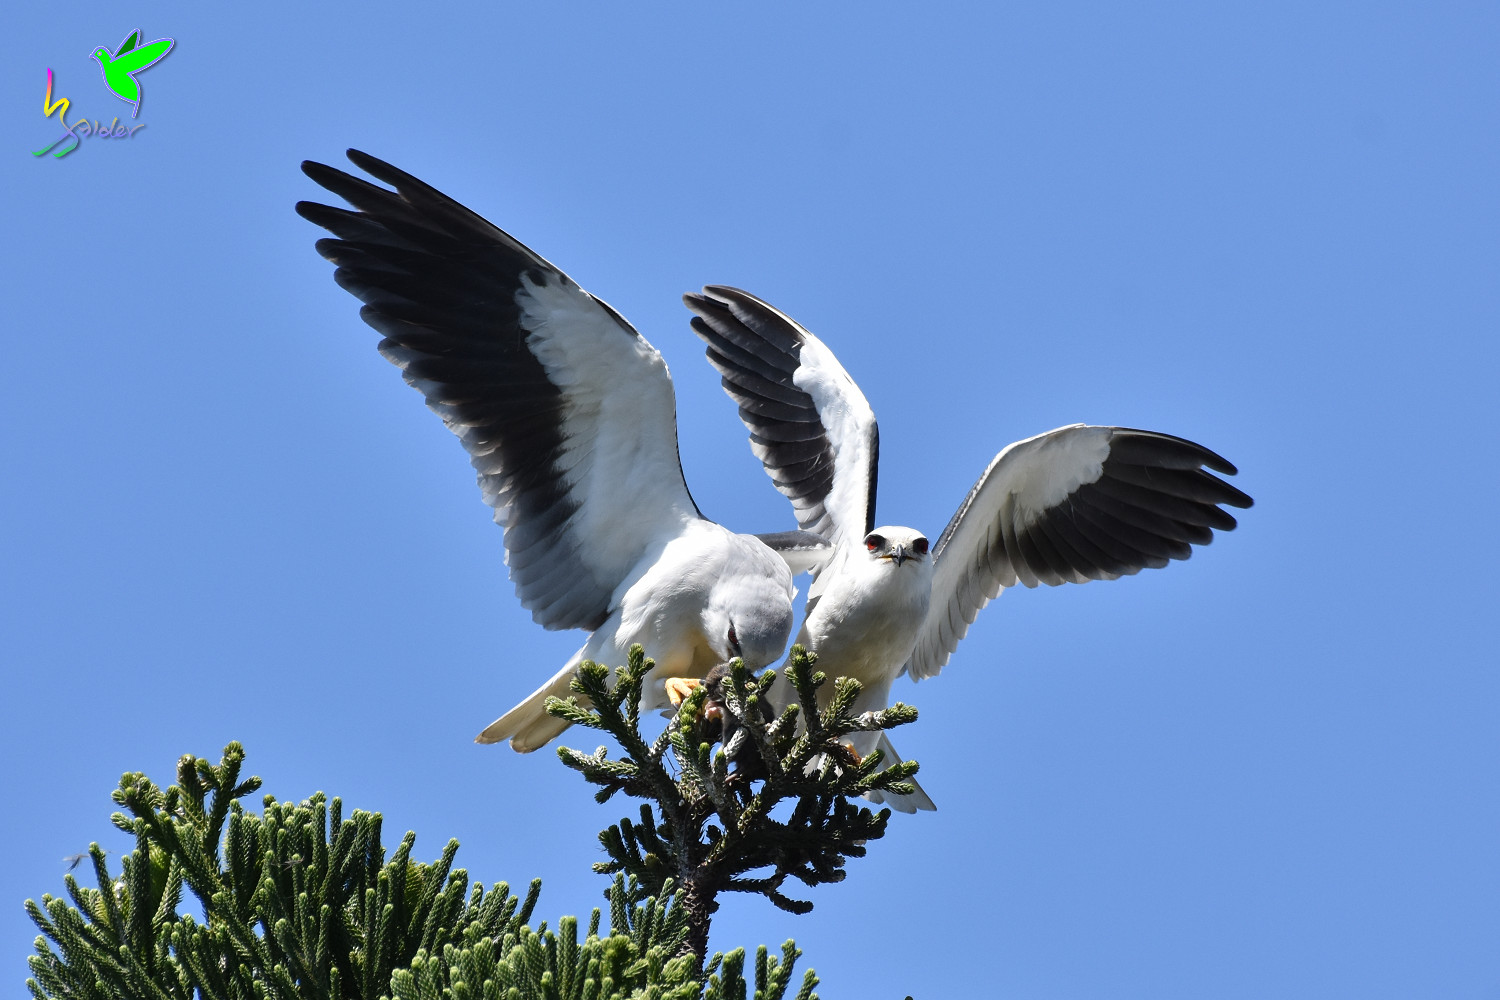 Black-winged_Kite_1930